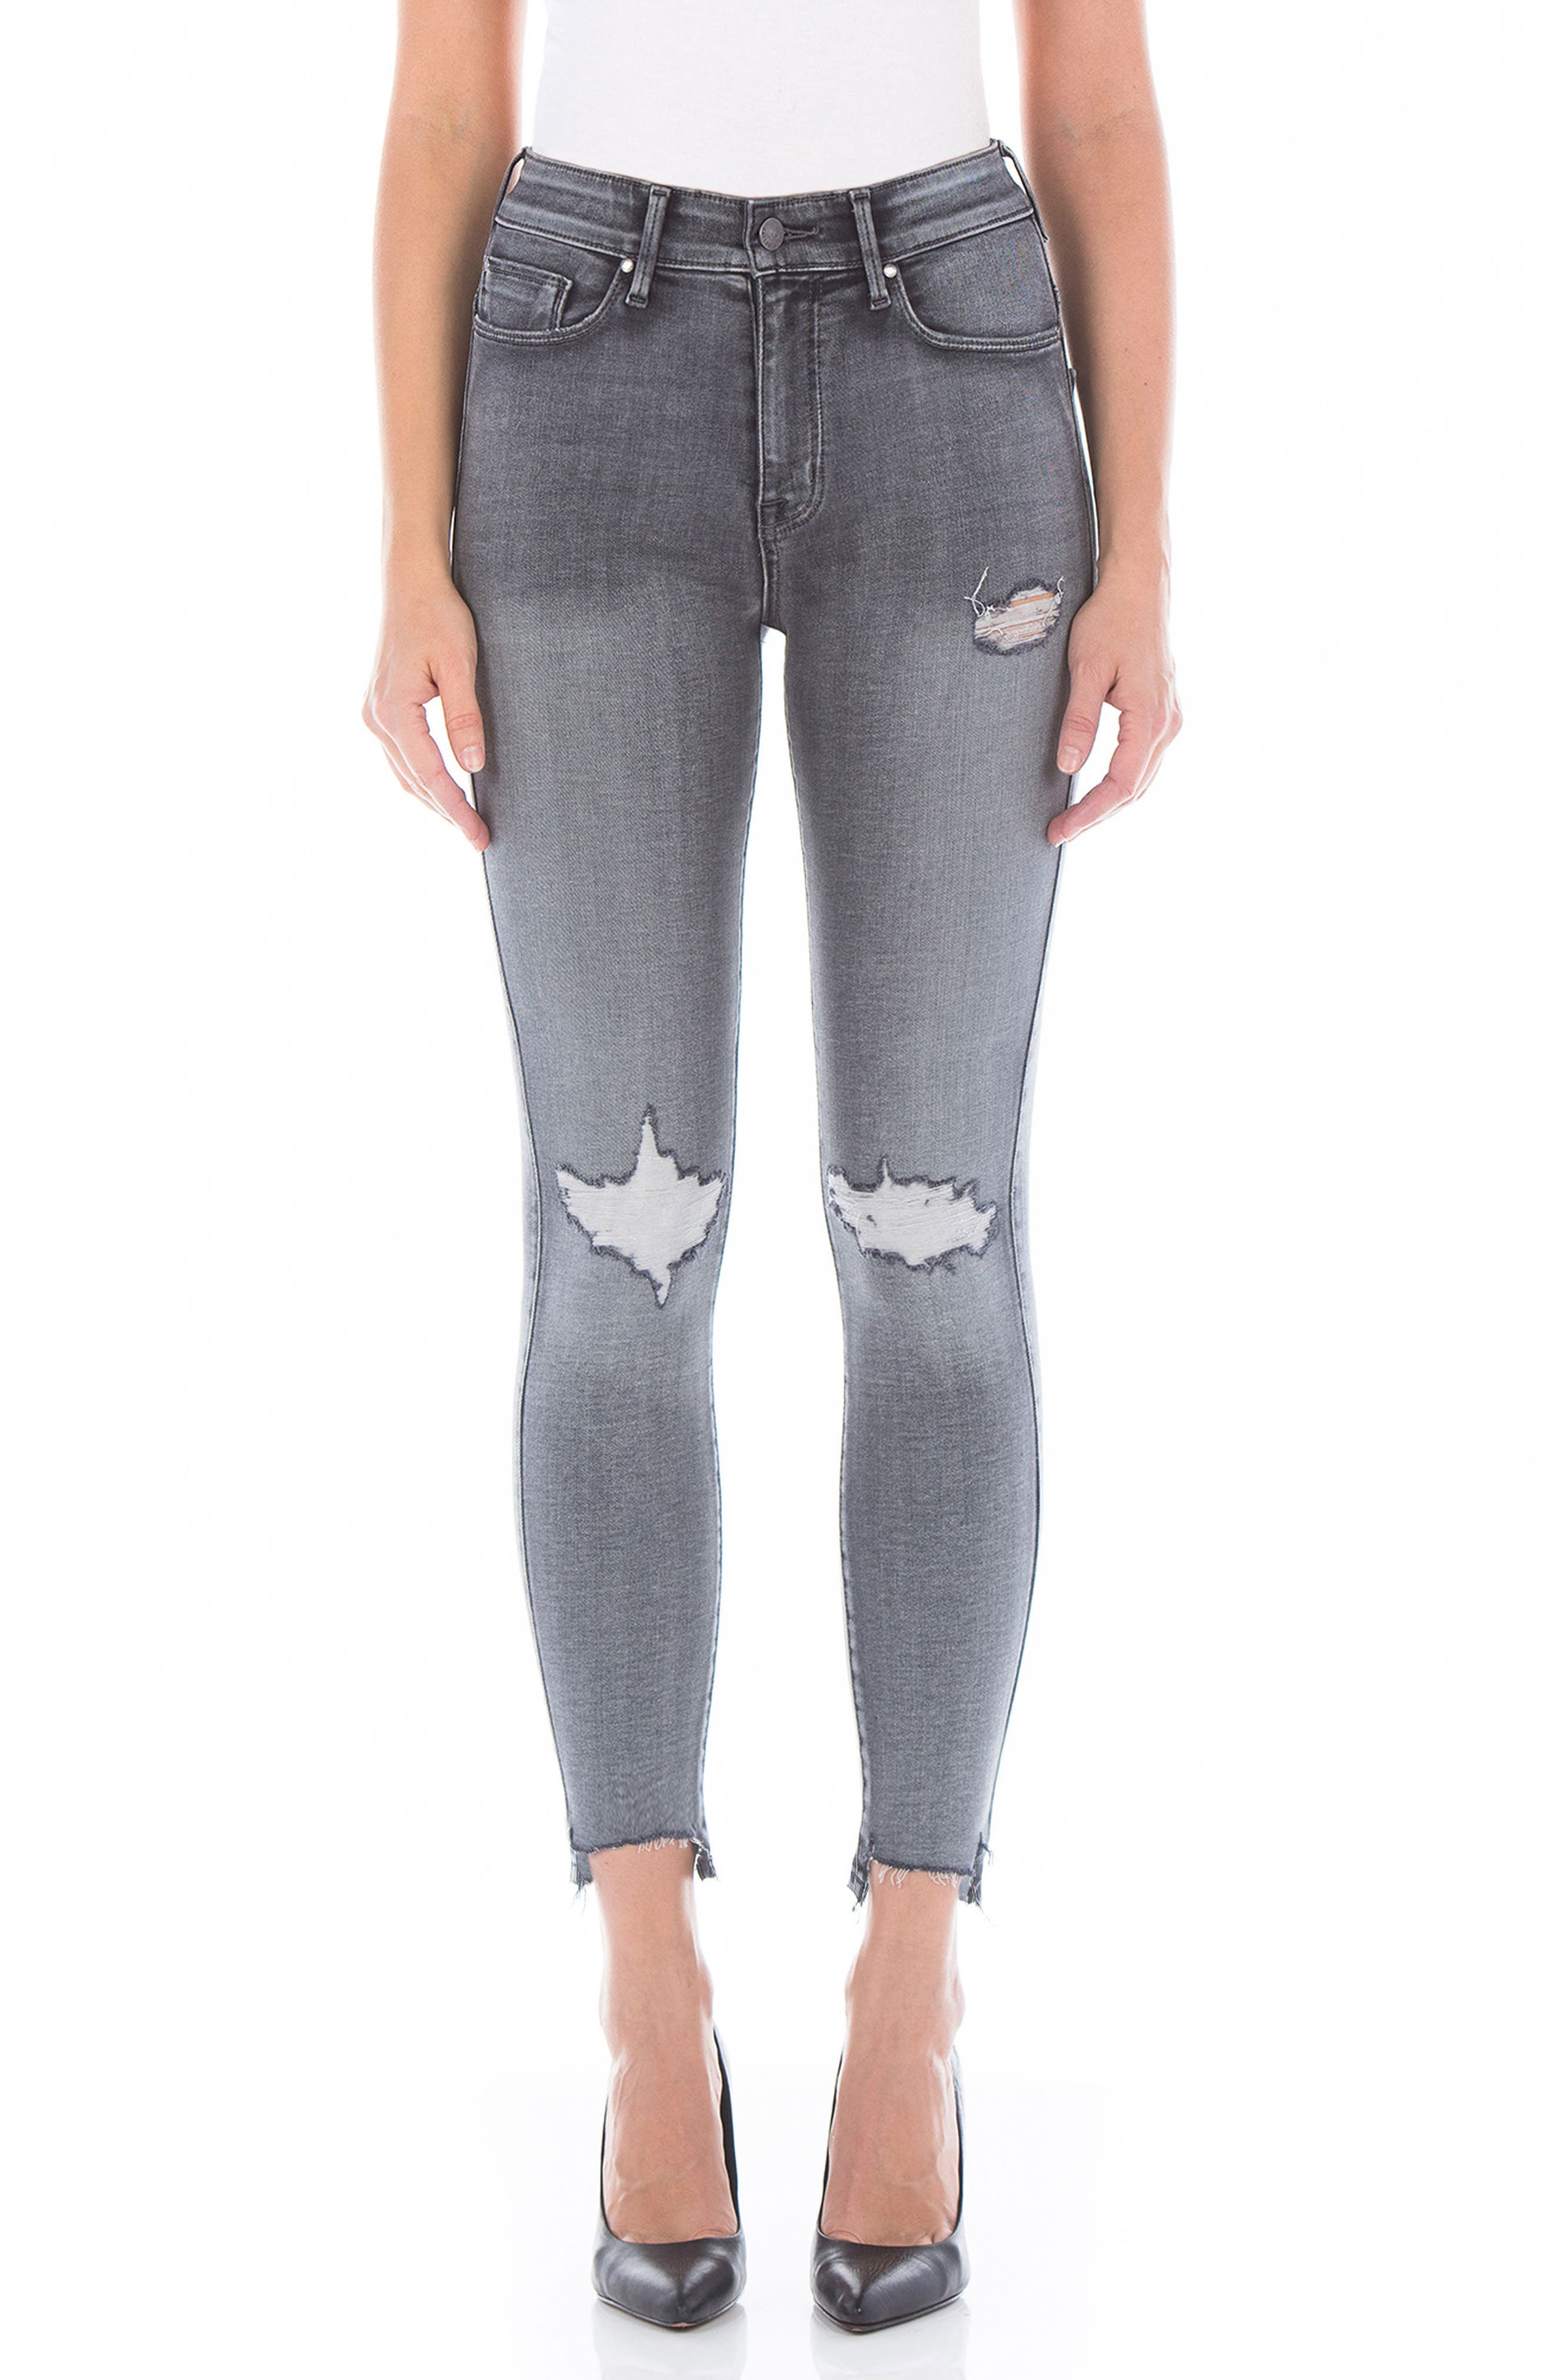 Alternate Image 1 Selected - Fidelity Denim Luna High Waist Distressed Skinny Jeans (Wiseman)